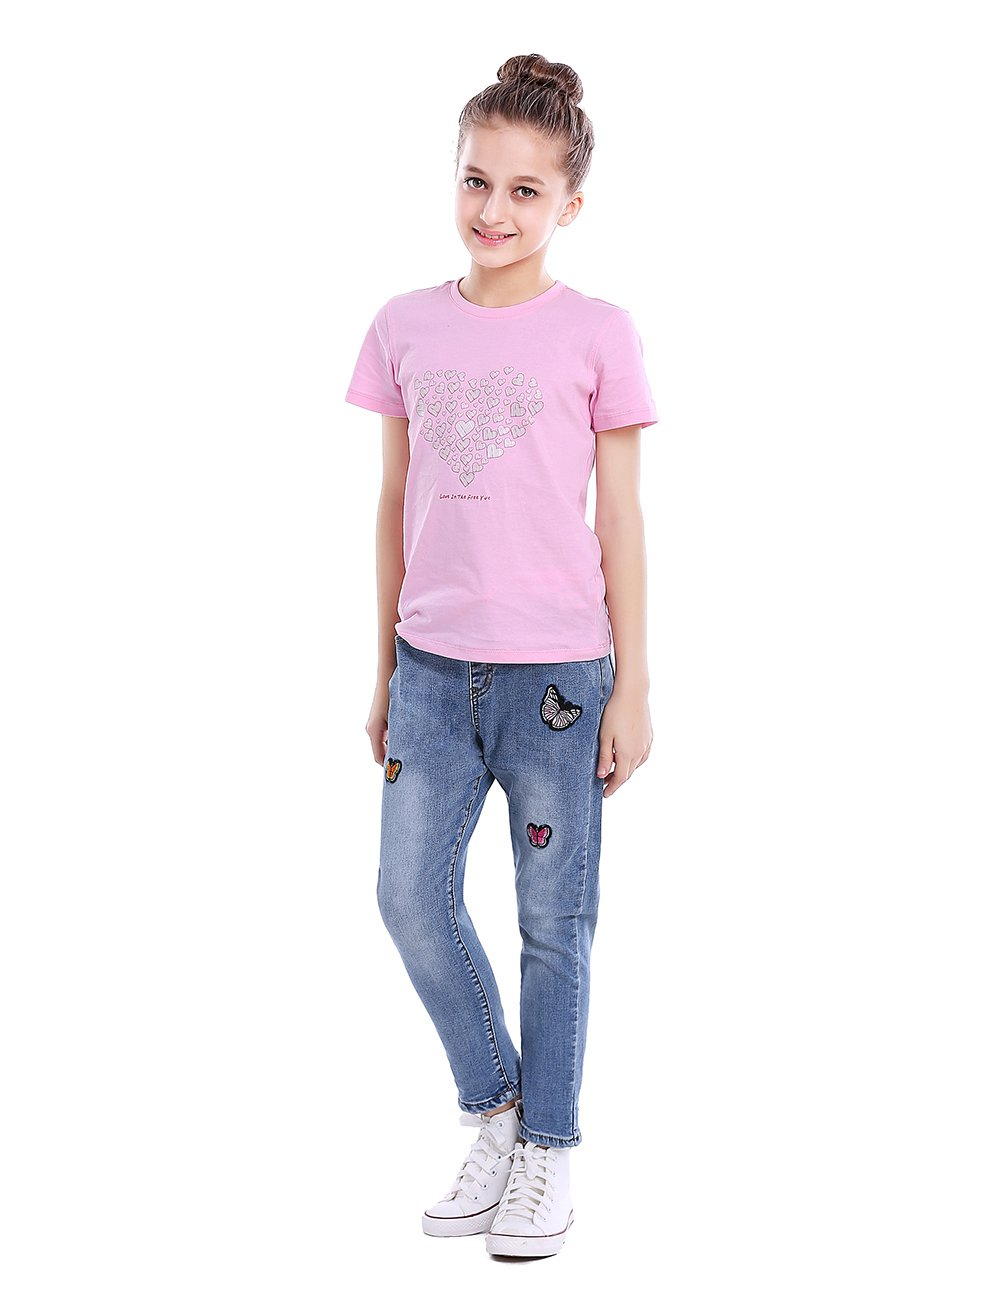 Premium Skinny Girls Jeans Slim Fit Jean Pants for Toddler and Teen Girls